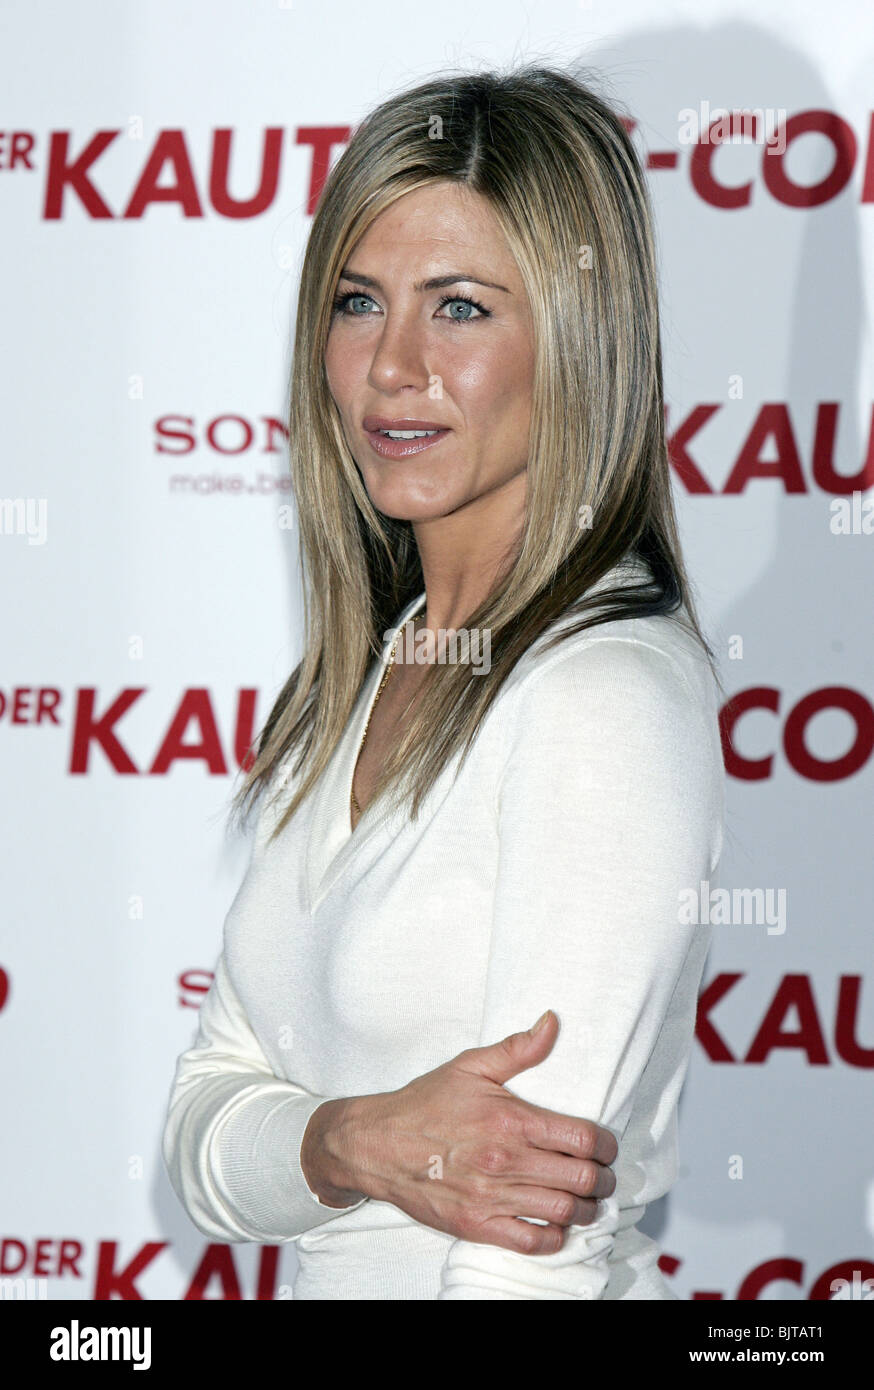 d2347324ae5 JENNIFER ANISTON THE BOUNTY HUNTER PHOTOCALL HOTEL DE ROME BERLIN GERMANY  29 March 2010 - Stock